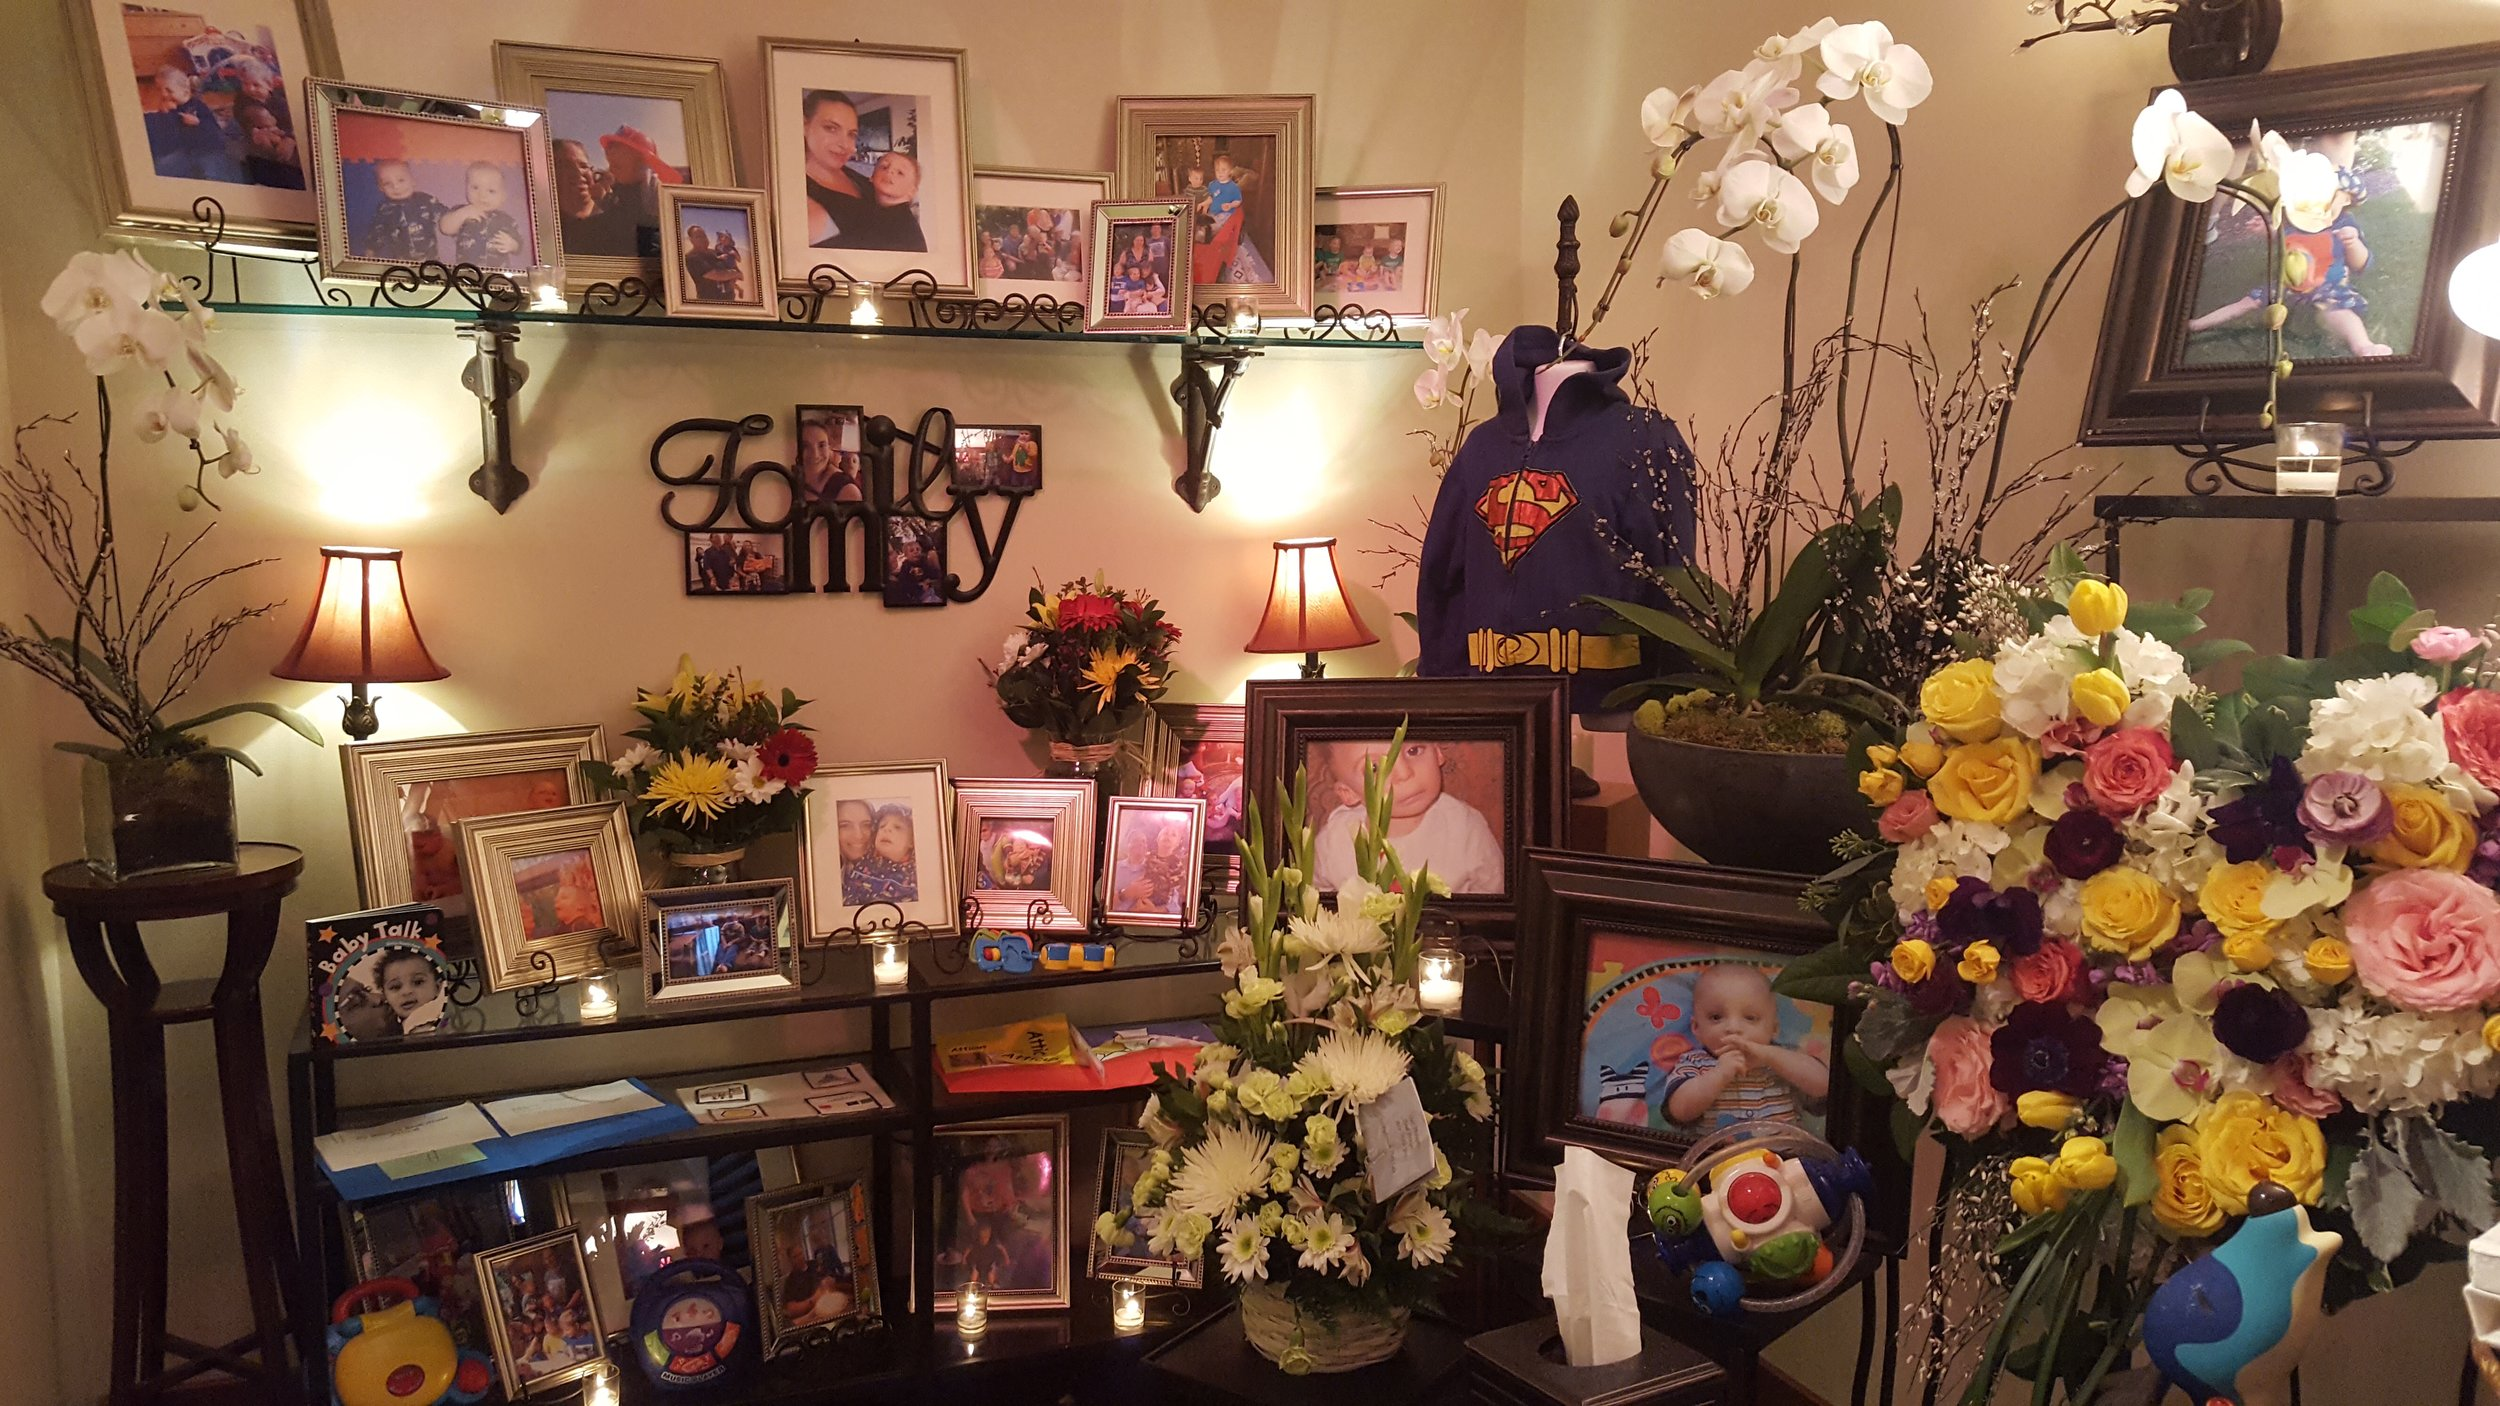 Atticus's celebration of life. This entire room was filled with pictures of Atticus and some of his favorite toys and activities.